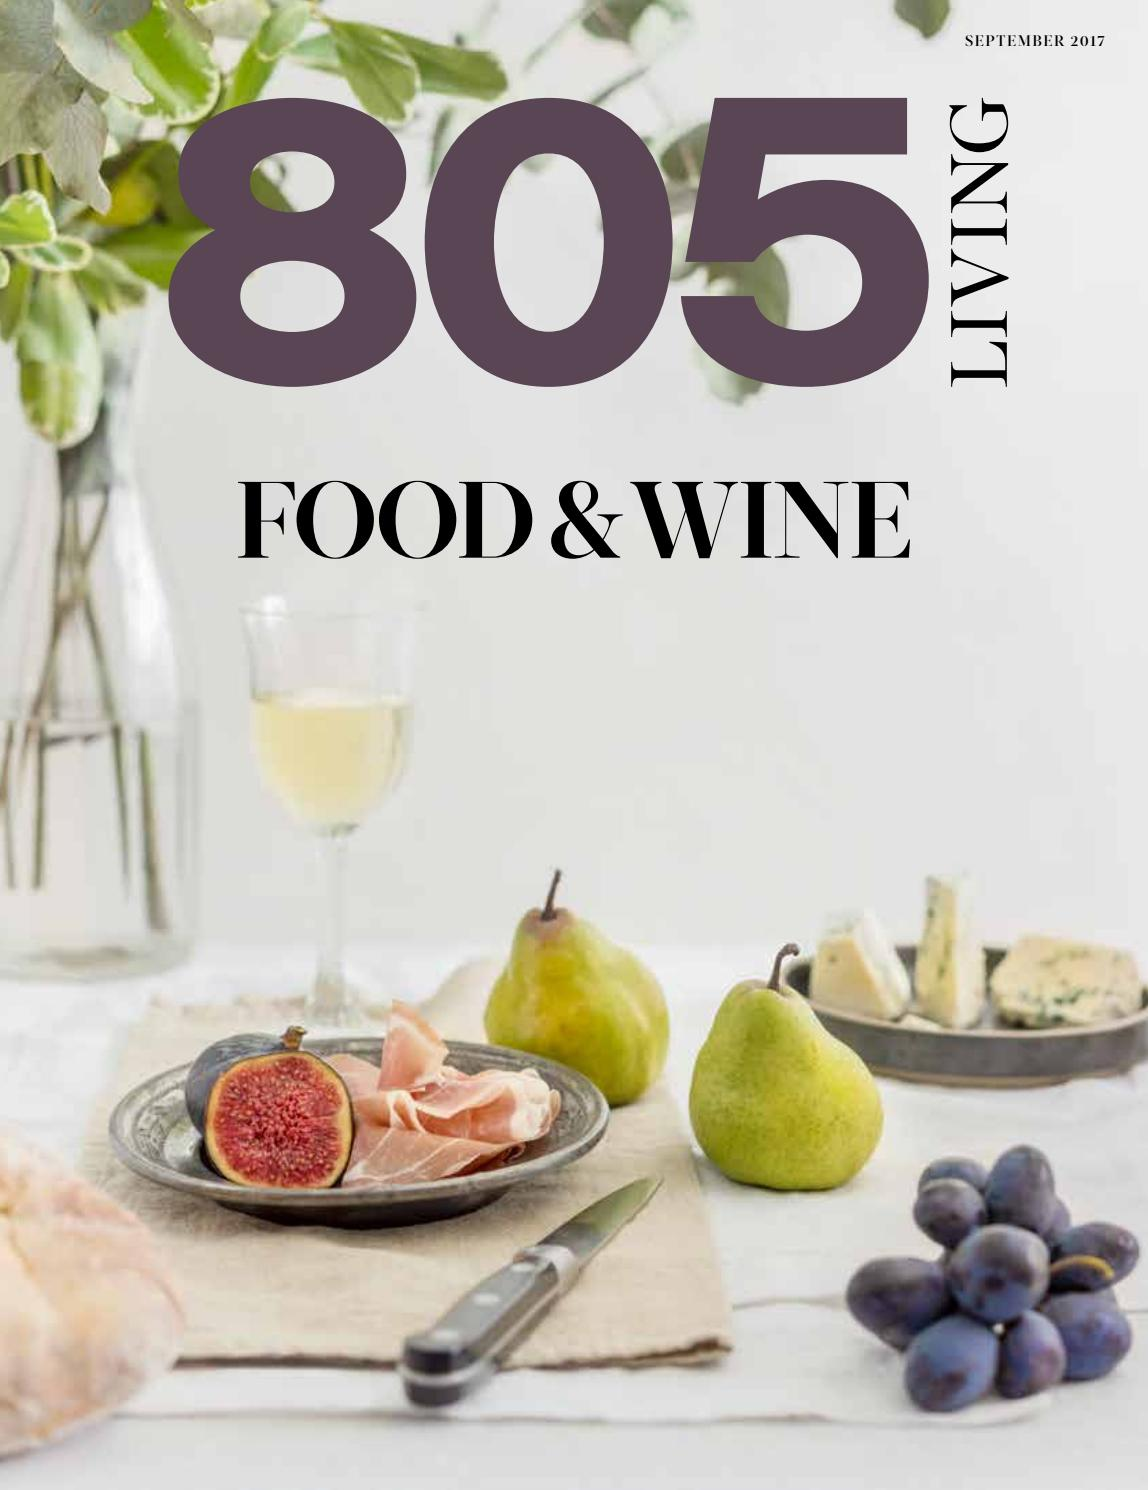 805 Living September 2017 By Issuu Ranco Digital Temperature Controller Wired Used Morewine